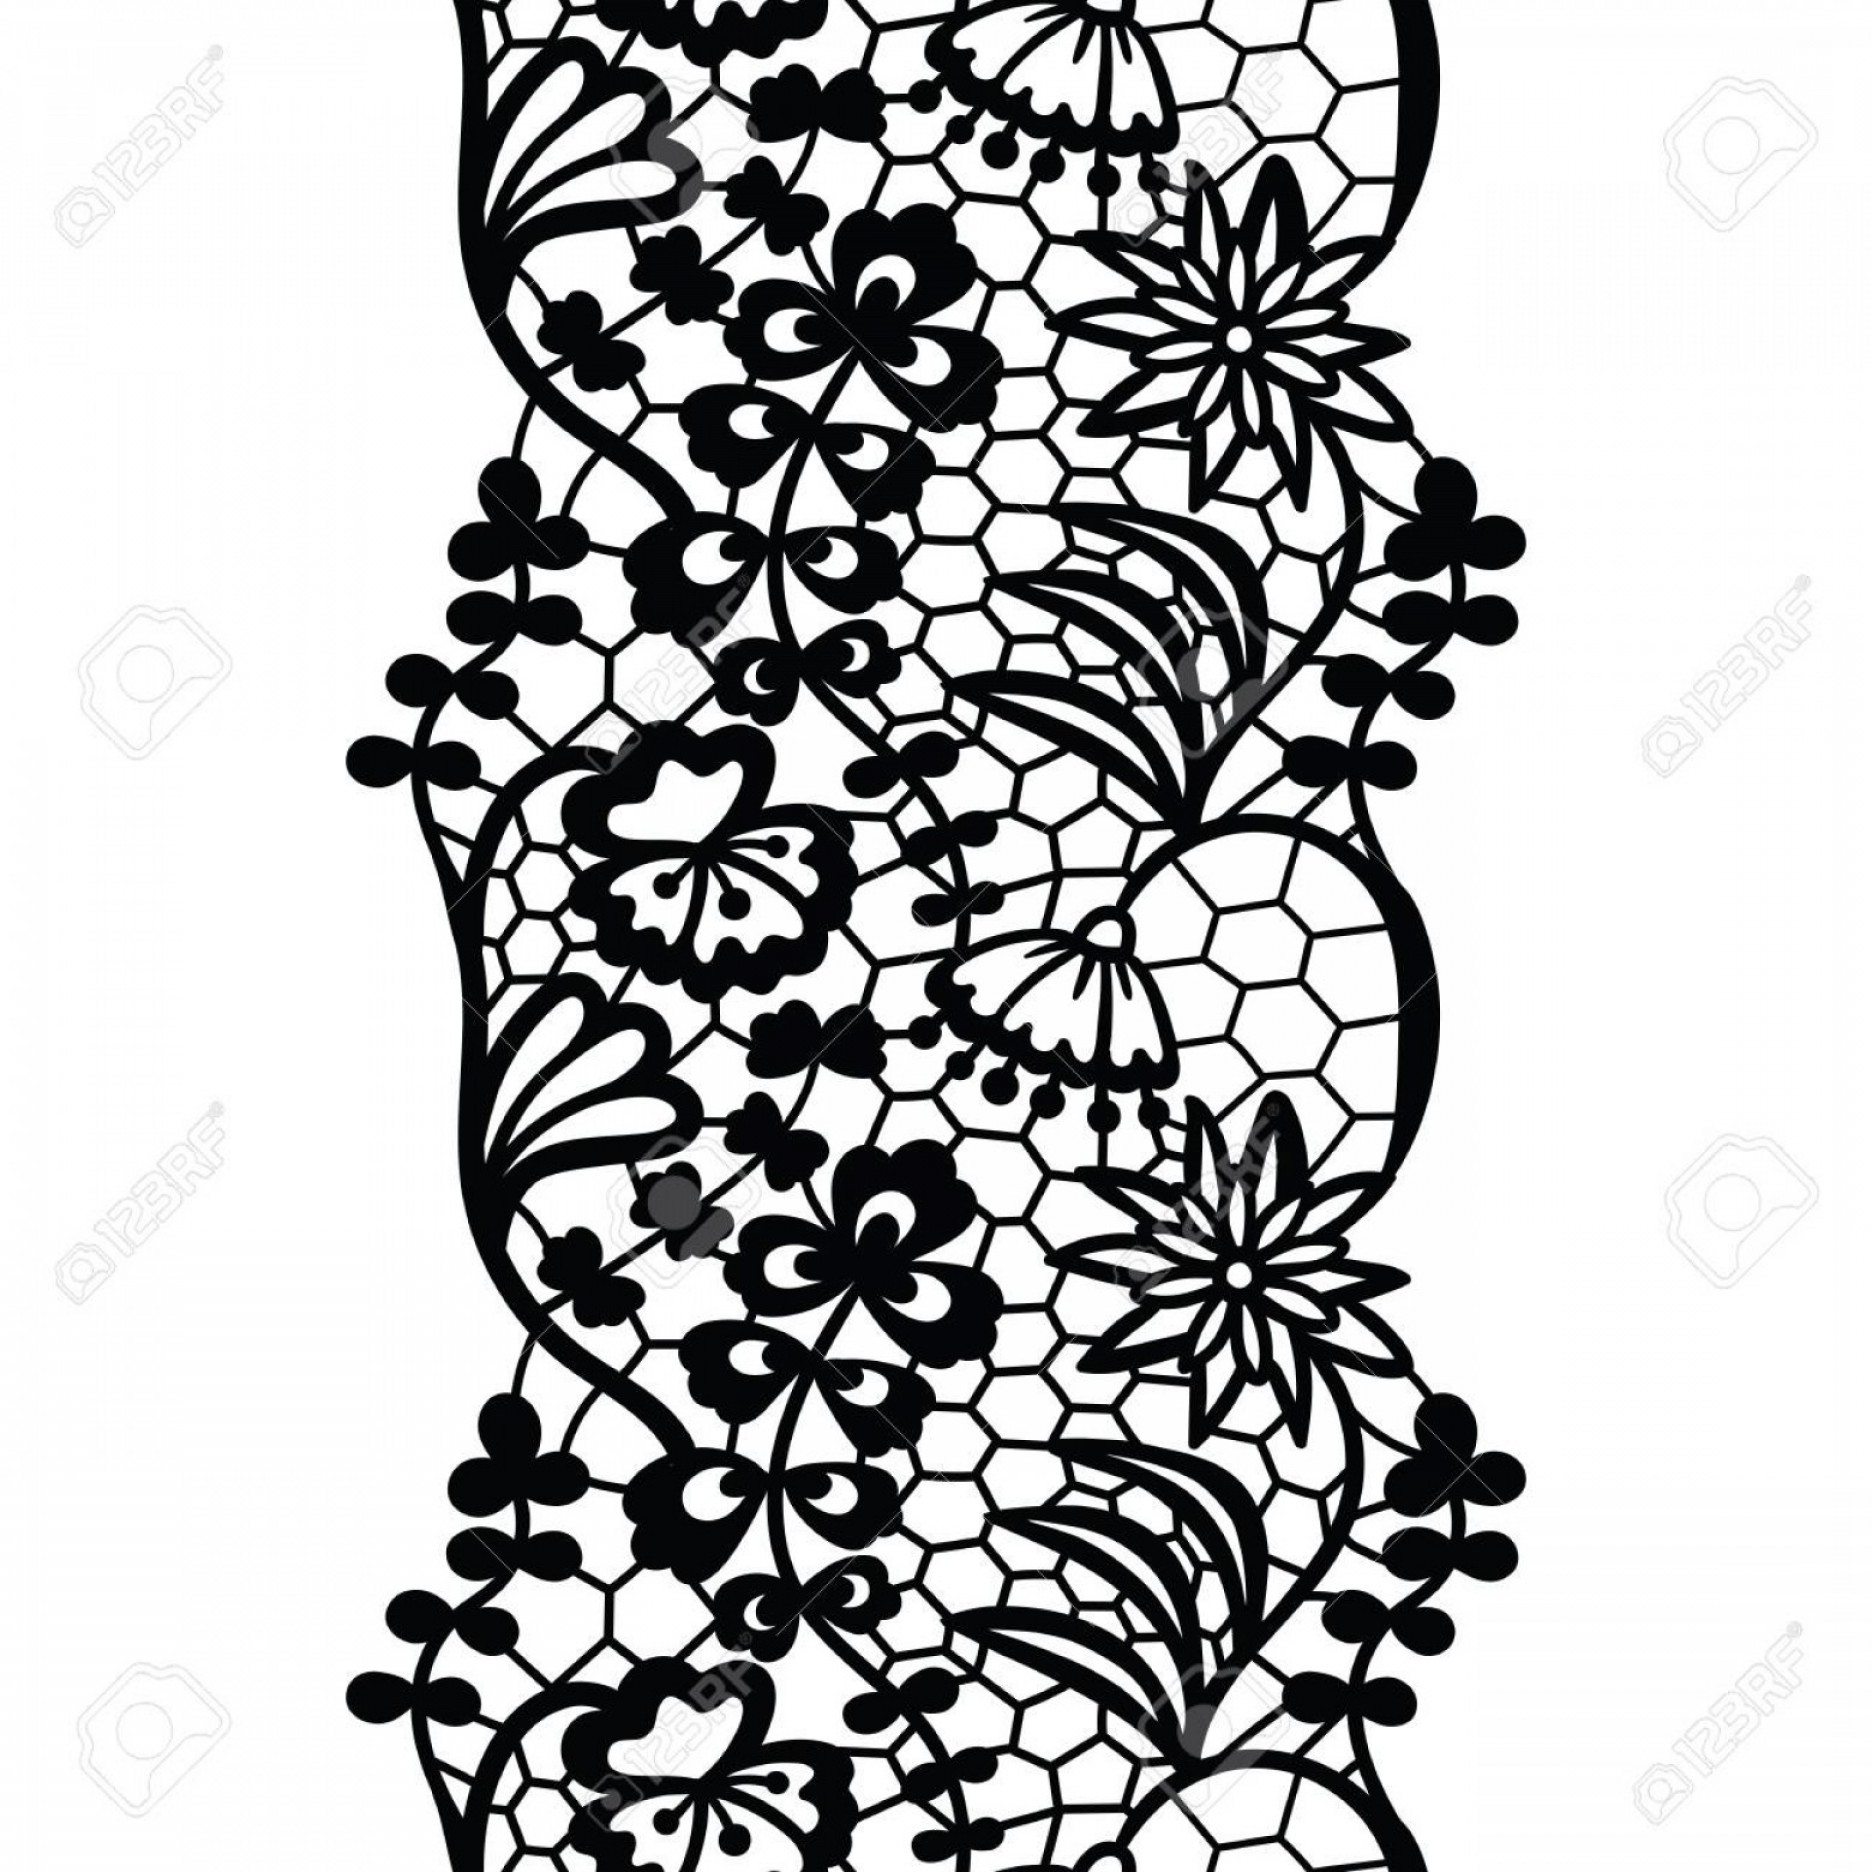 Floral Lace Trim Vector: Photostock Vector Vintage Lack Lace Trim With Scalloped Edges And Floral Pattern